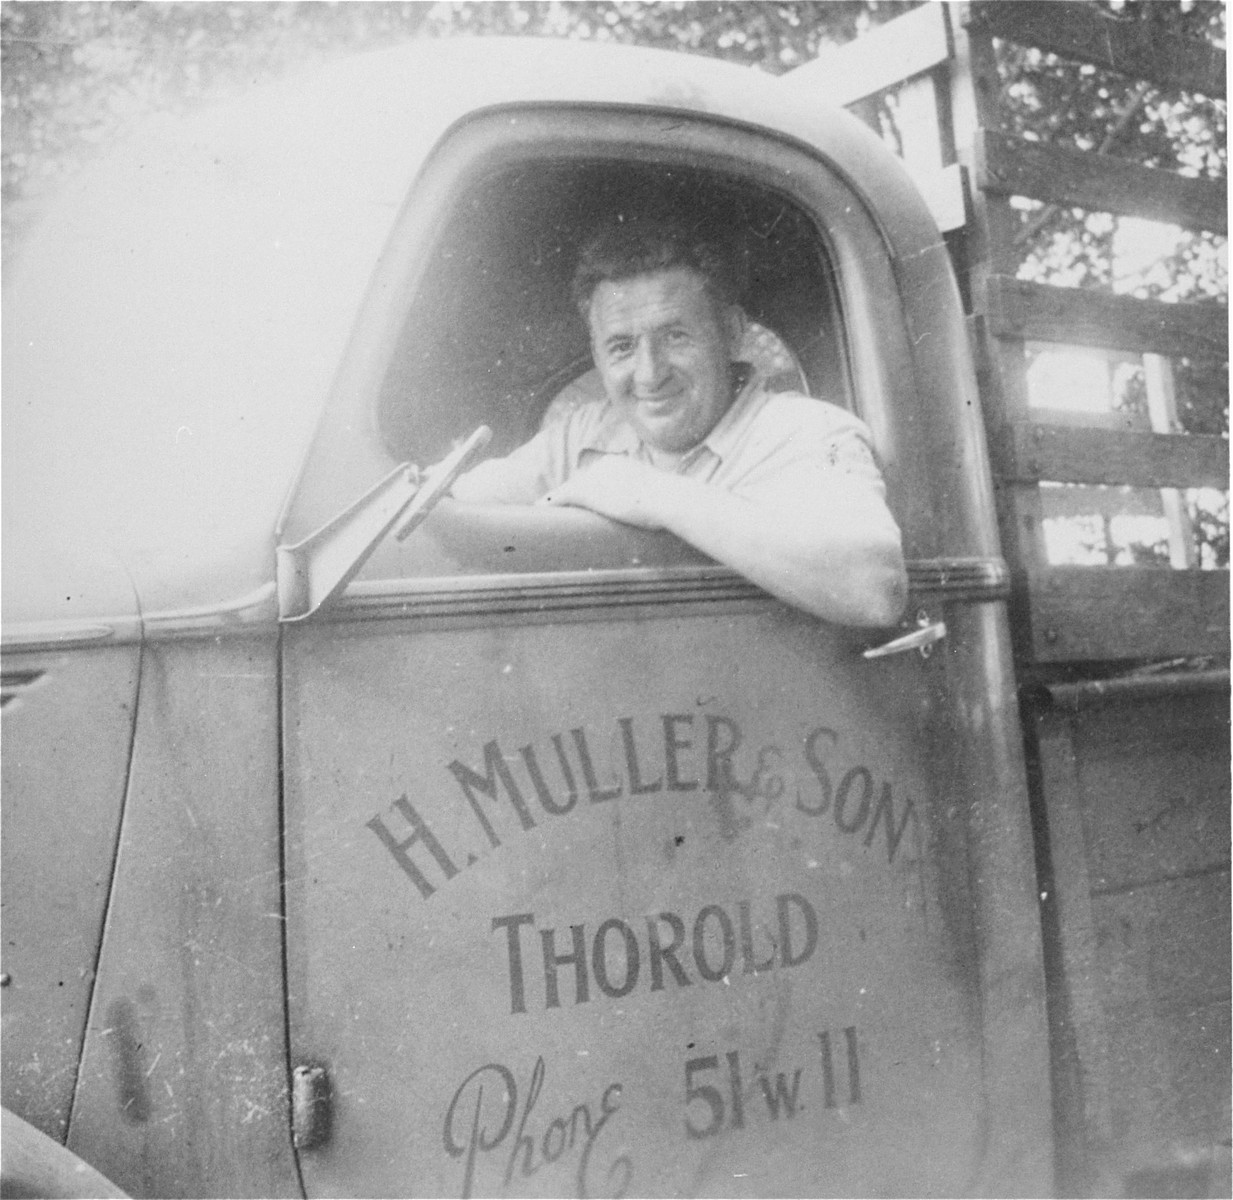 Portrait of Nandor Muller in his truck bearing the same company name as his grandfather's wholesale grain business in Czechoslovakia.